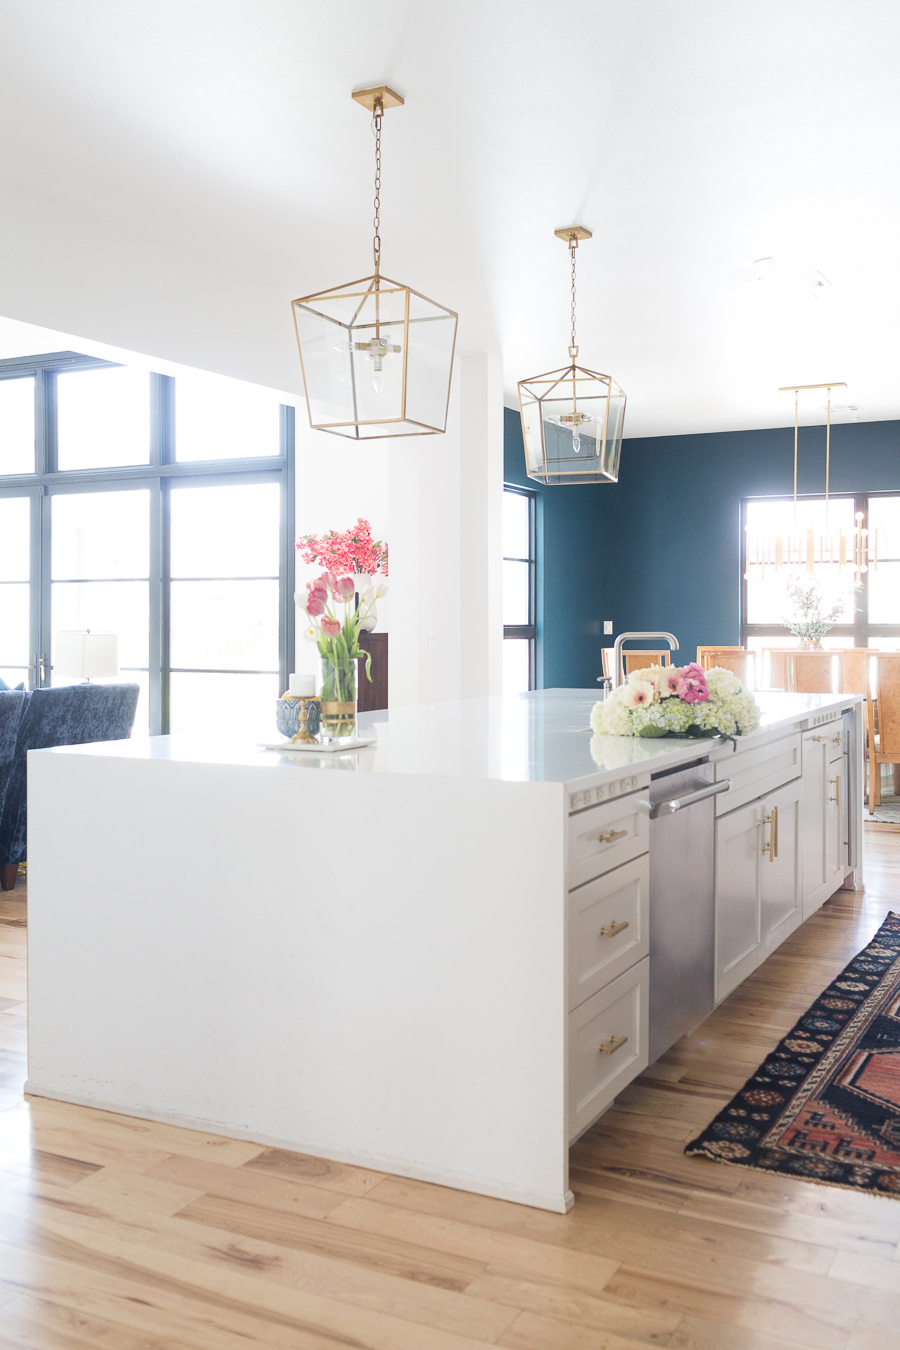 How to Find Black Windows and Doors for Less large waterfall kitchen island with quartz countertops and gold kitchen pendants with dark blue green dining room and white walls with black windows and doors